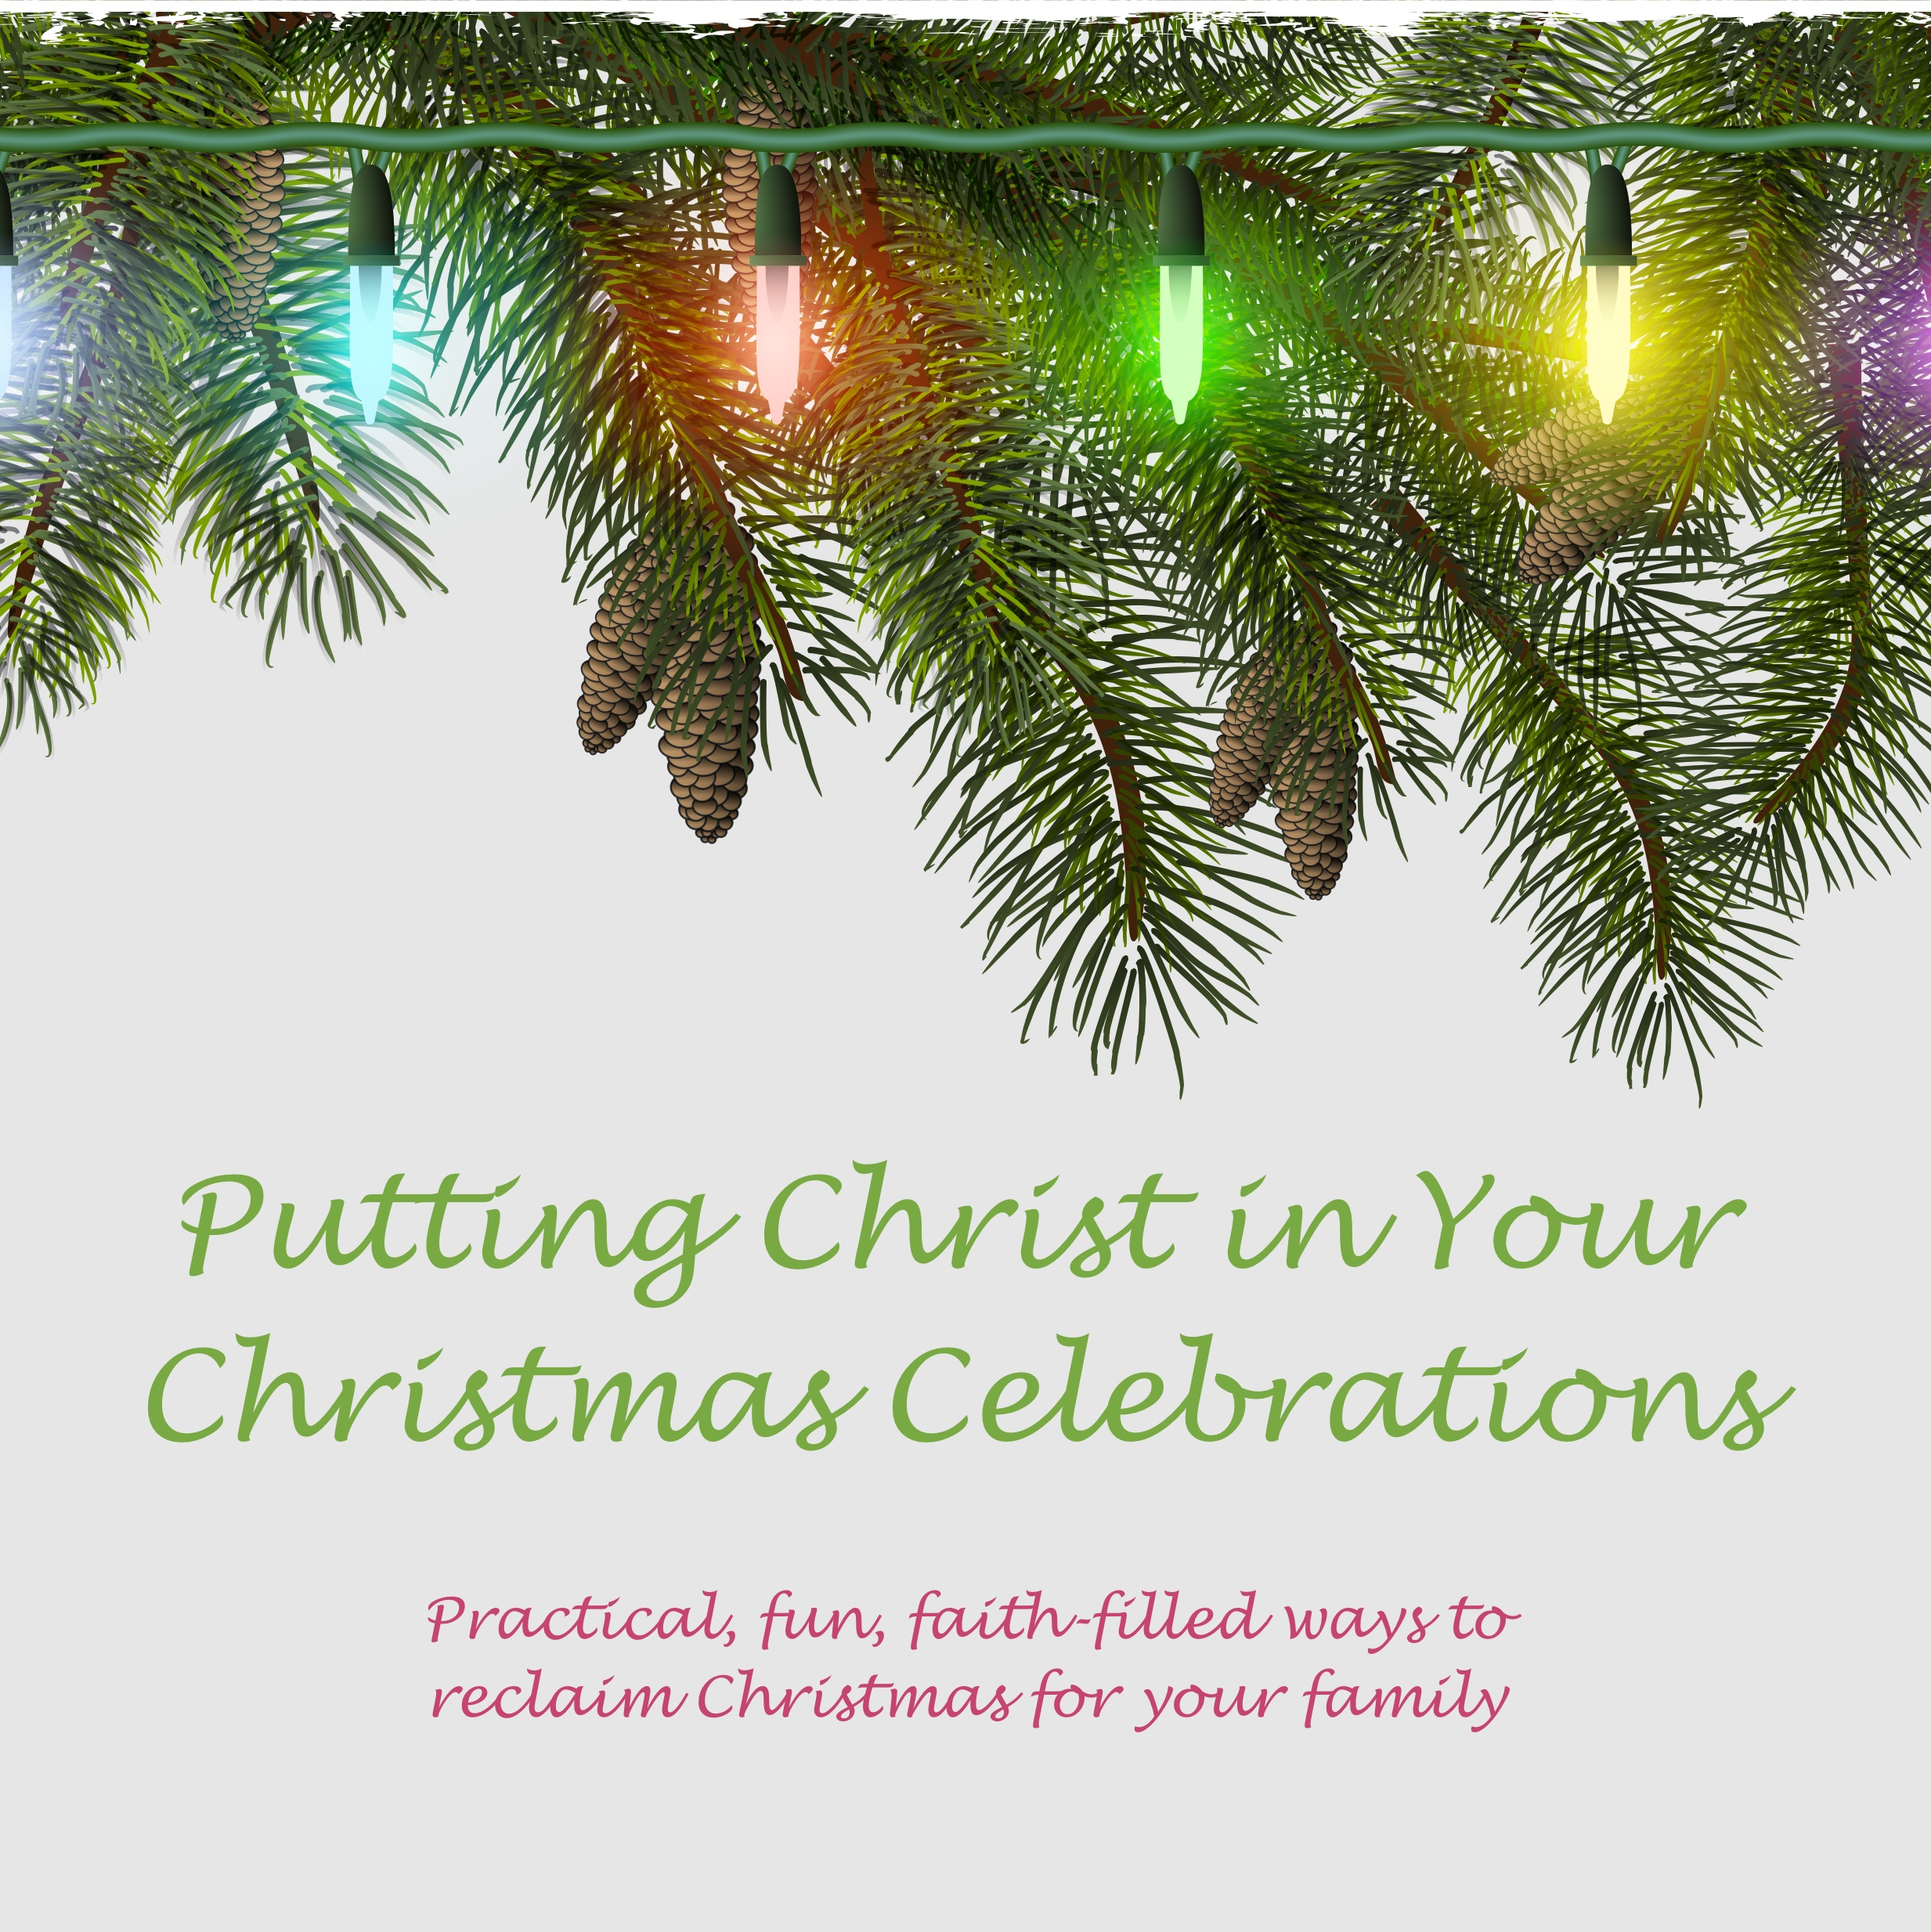 christ in christmas website image.jpg